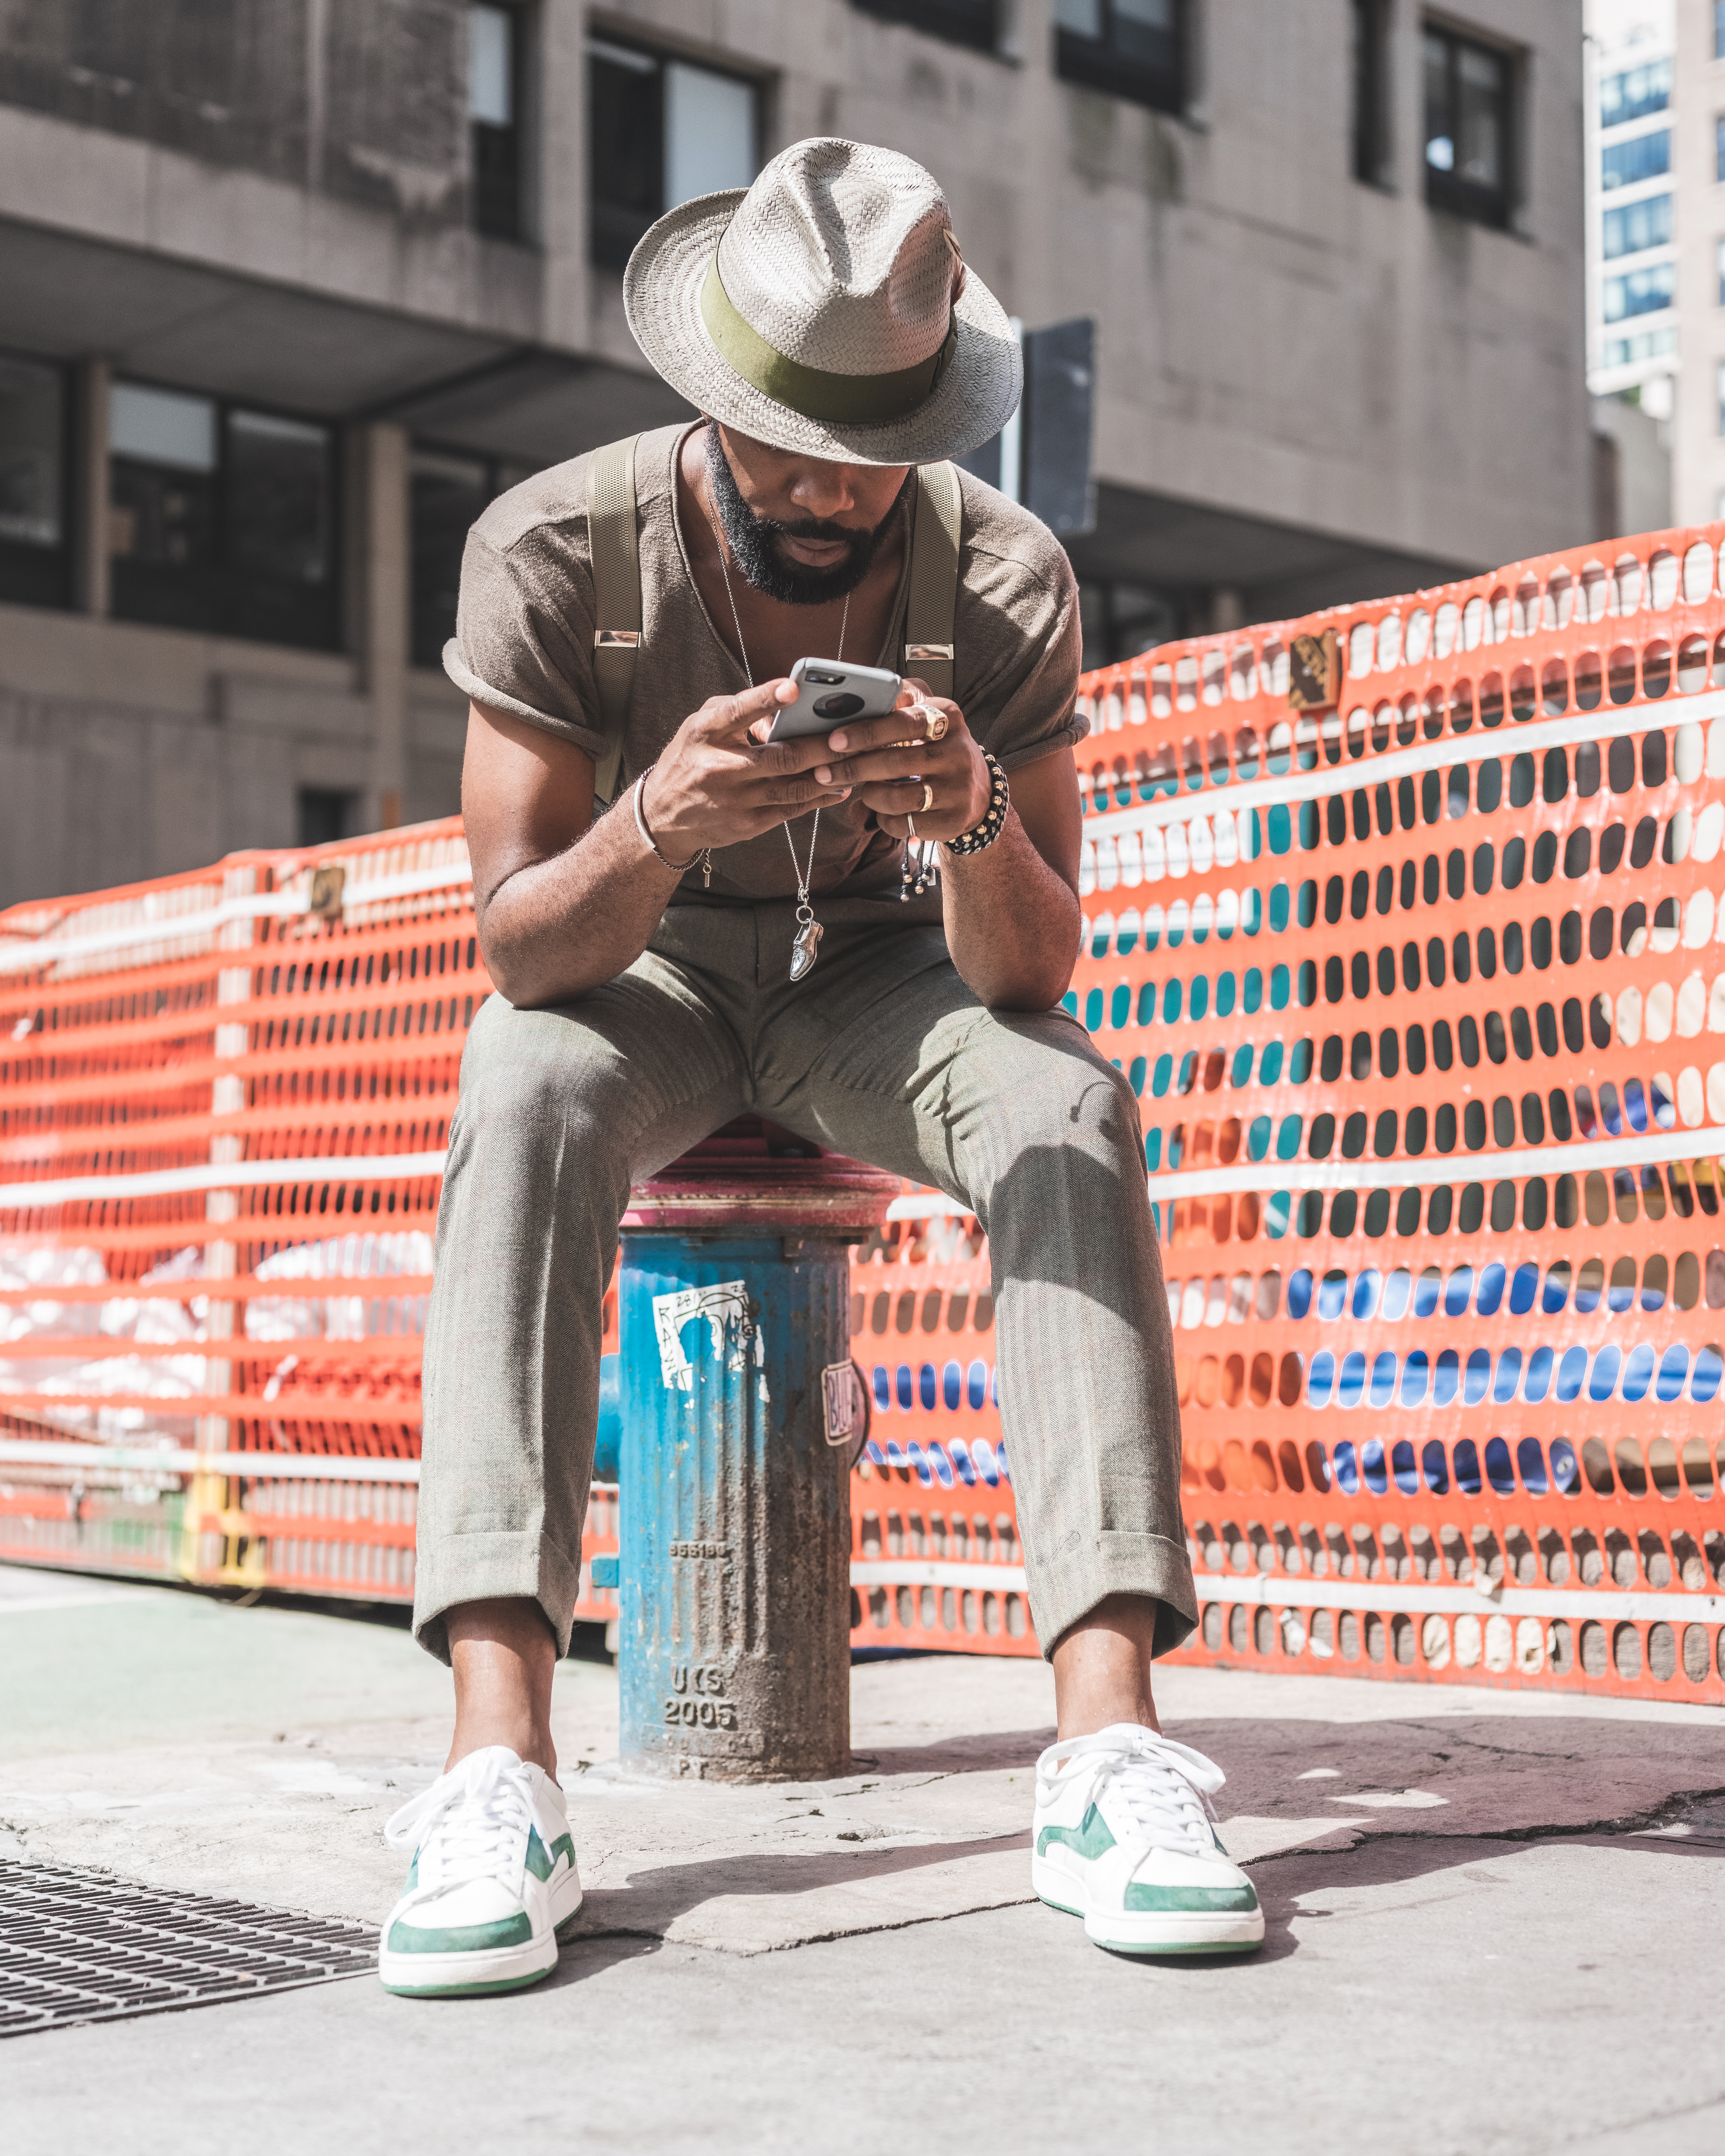 Photo Of Man Holding His Smartphone